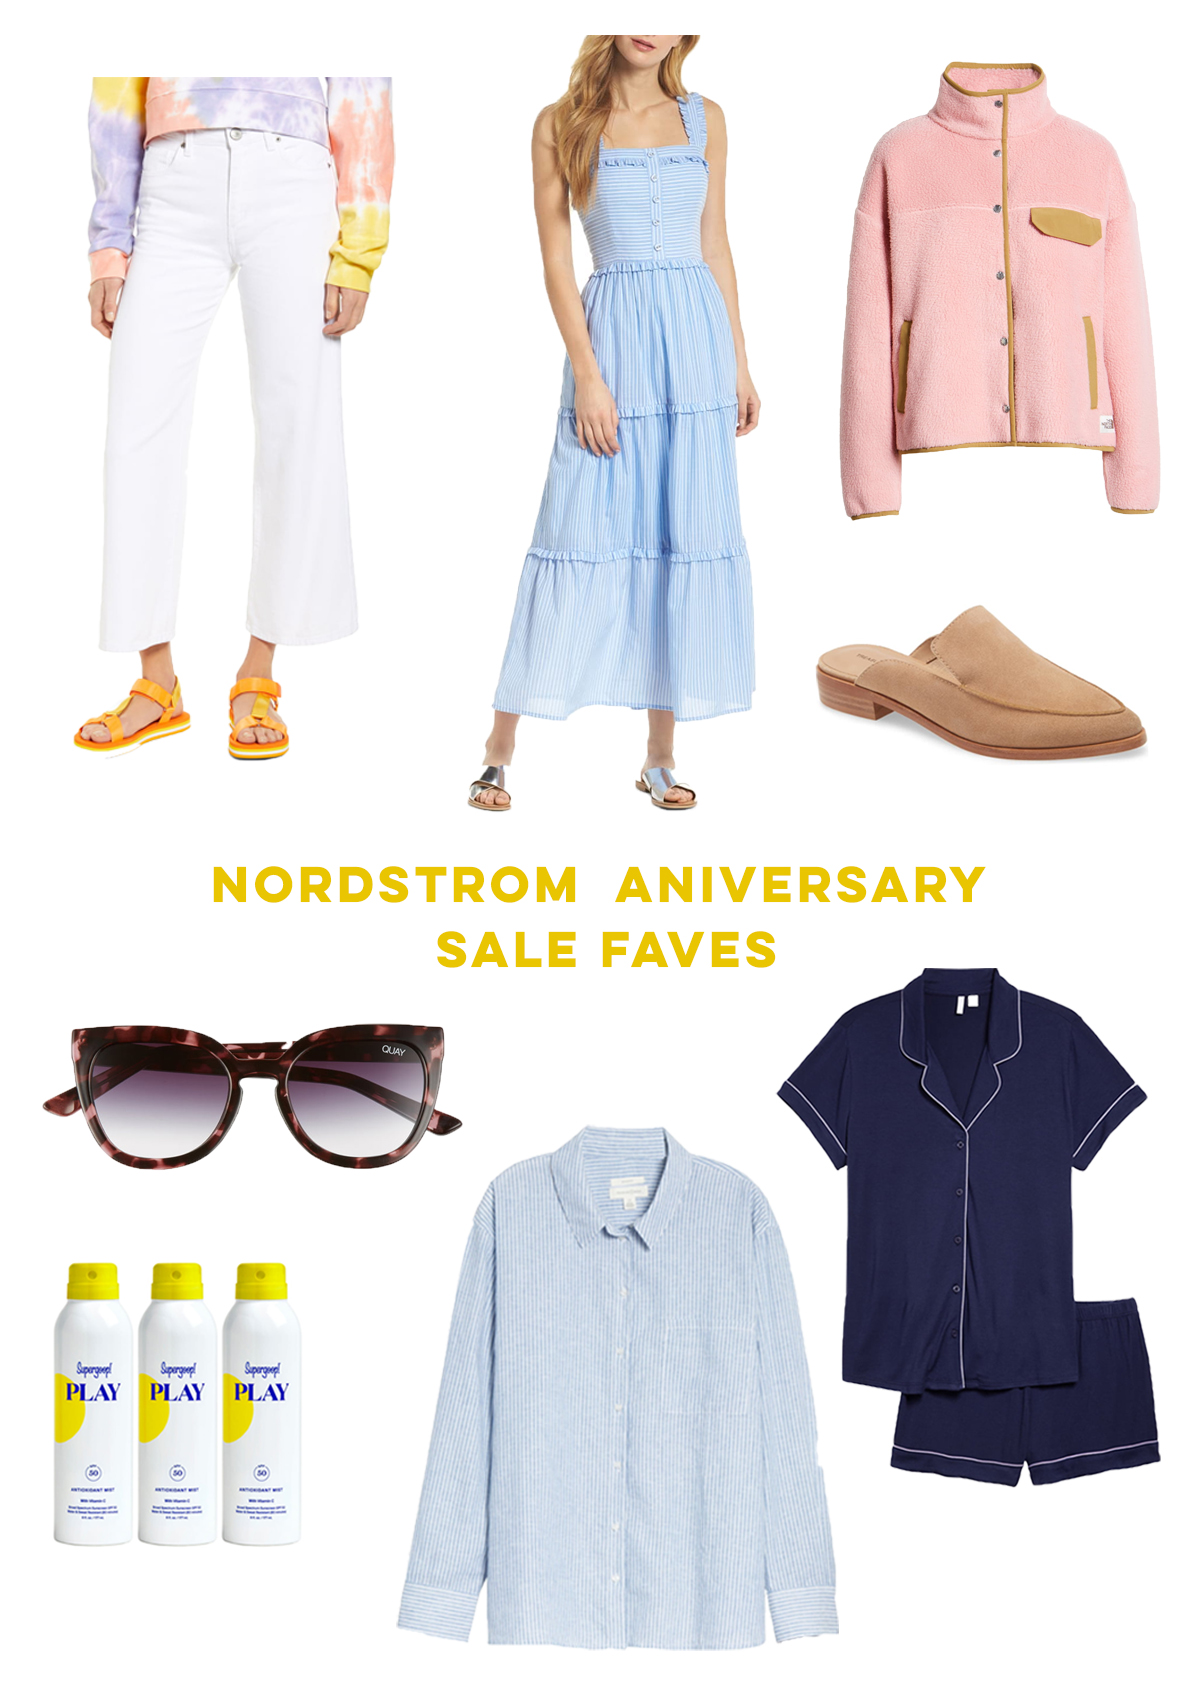 Nordstrom Anniversary Sale Favorites 2020 / Matching Pajama Set / Gal Meets Glam Dress / Backless Loafer / Tortoise Sunglasses / Supergoop Sunscreen - Sunshine Style, A Classic Fashion and Coastal Lifestyle Blog by Katie